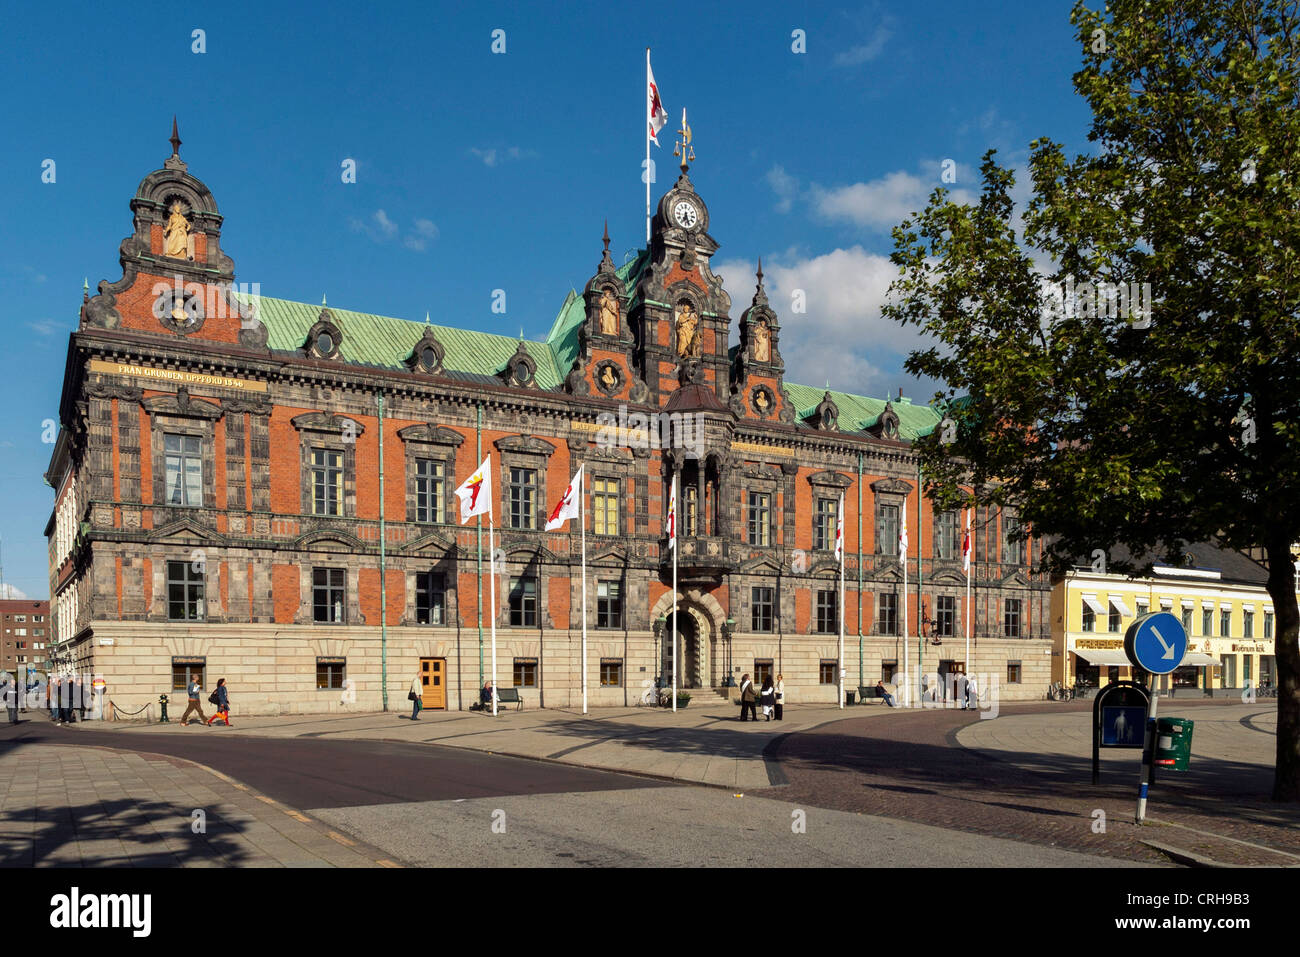 The Rathaus, City Hall at Malmo, Sweden - Stock Image